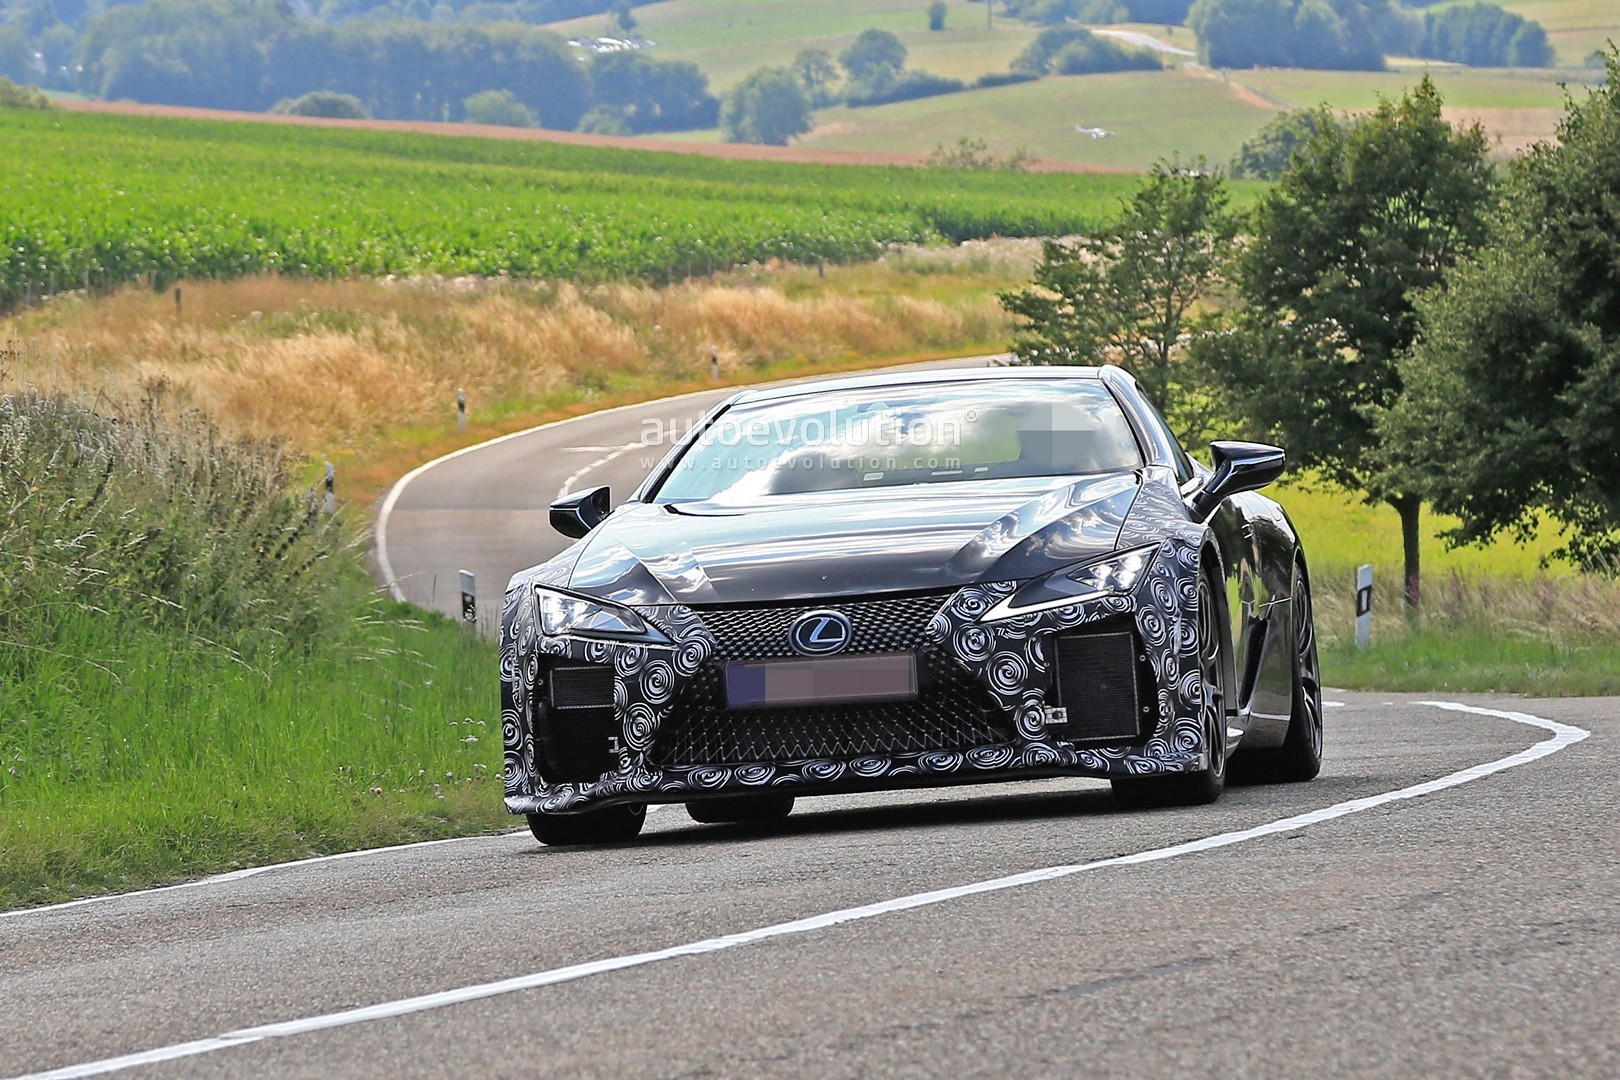 Lexus Lc F Spied For The First Time Looks To Become A Japanese Supercar on Lc Engines